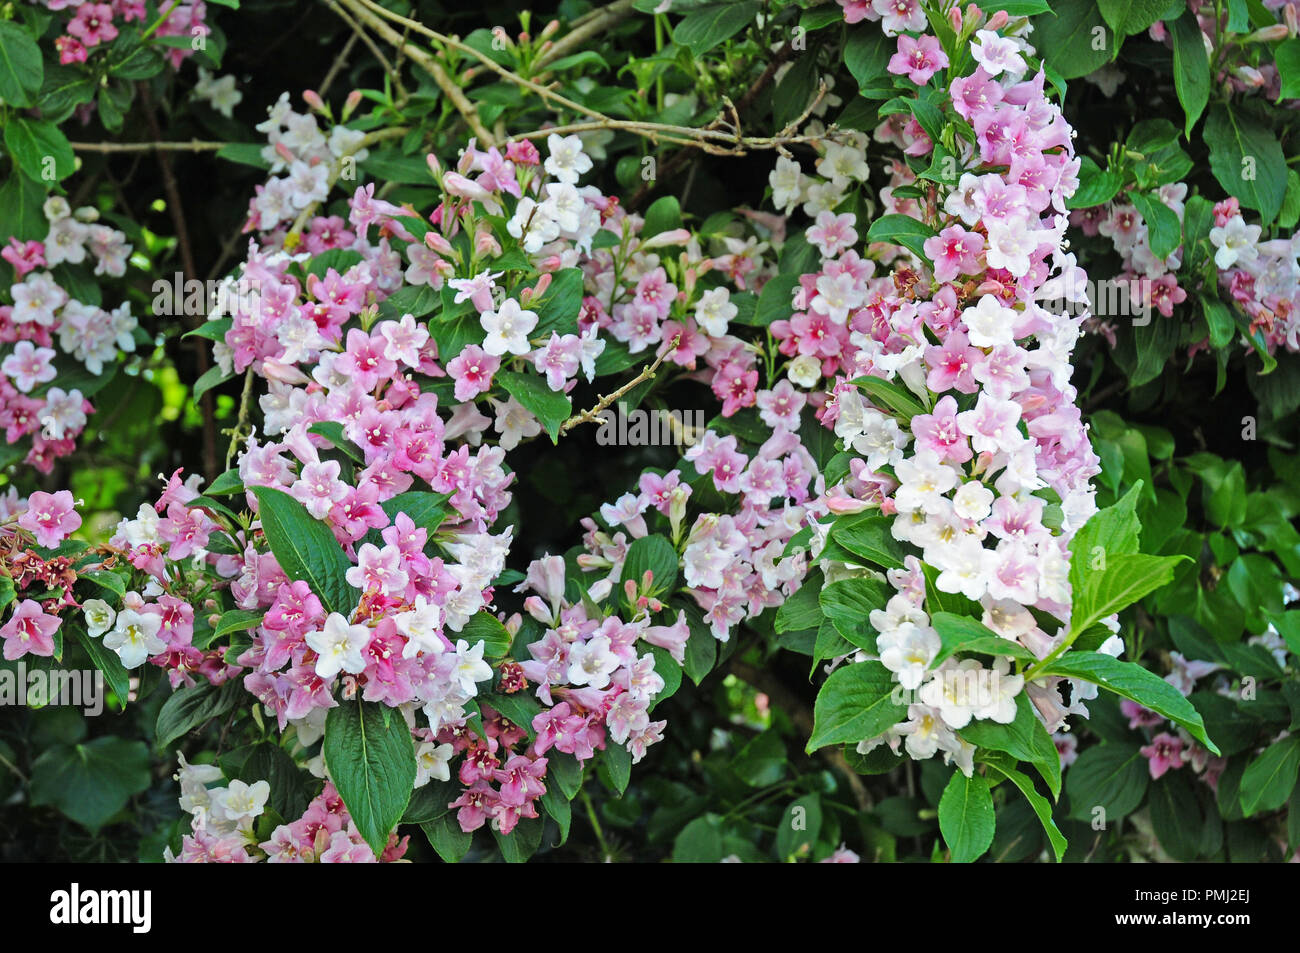 White Flowers Of Weigela Florida Fading To Pink Stock Photo